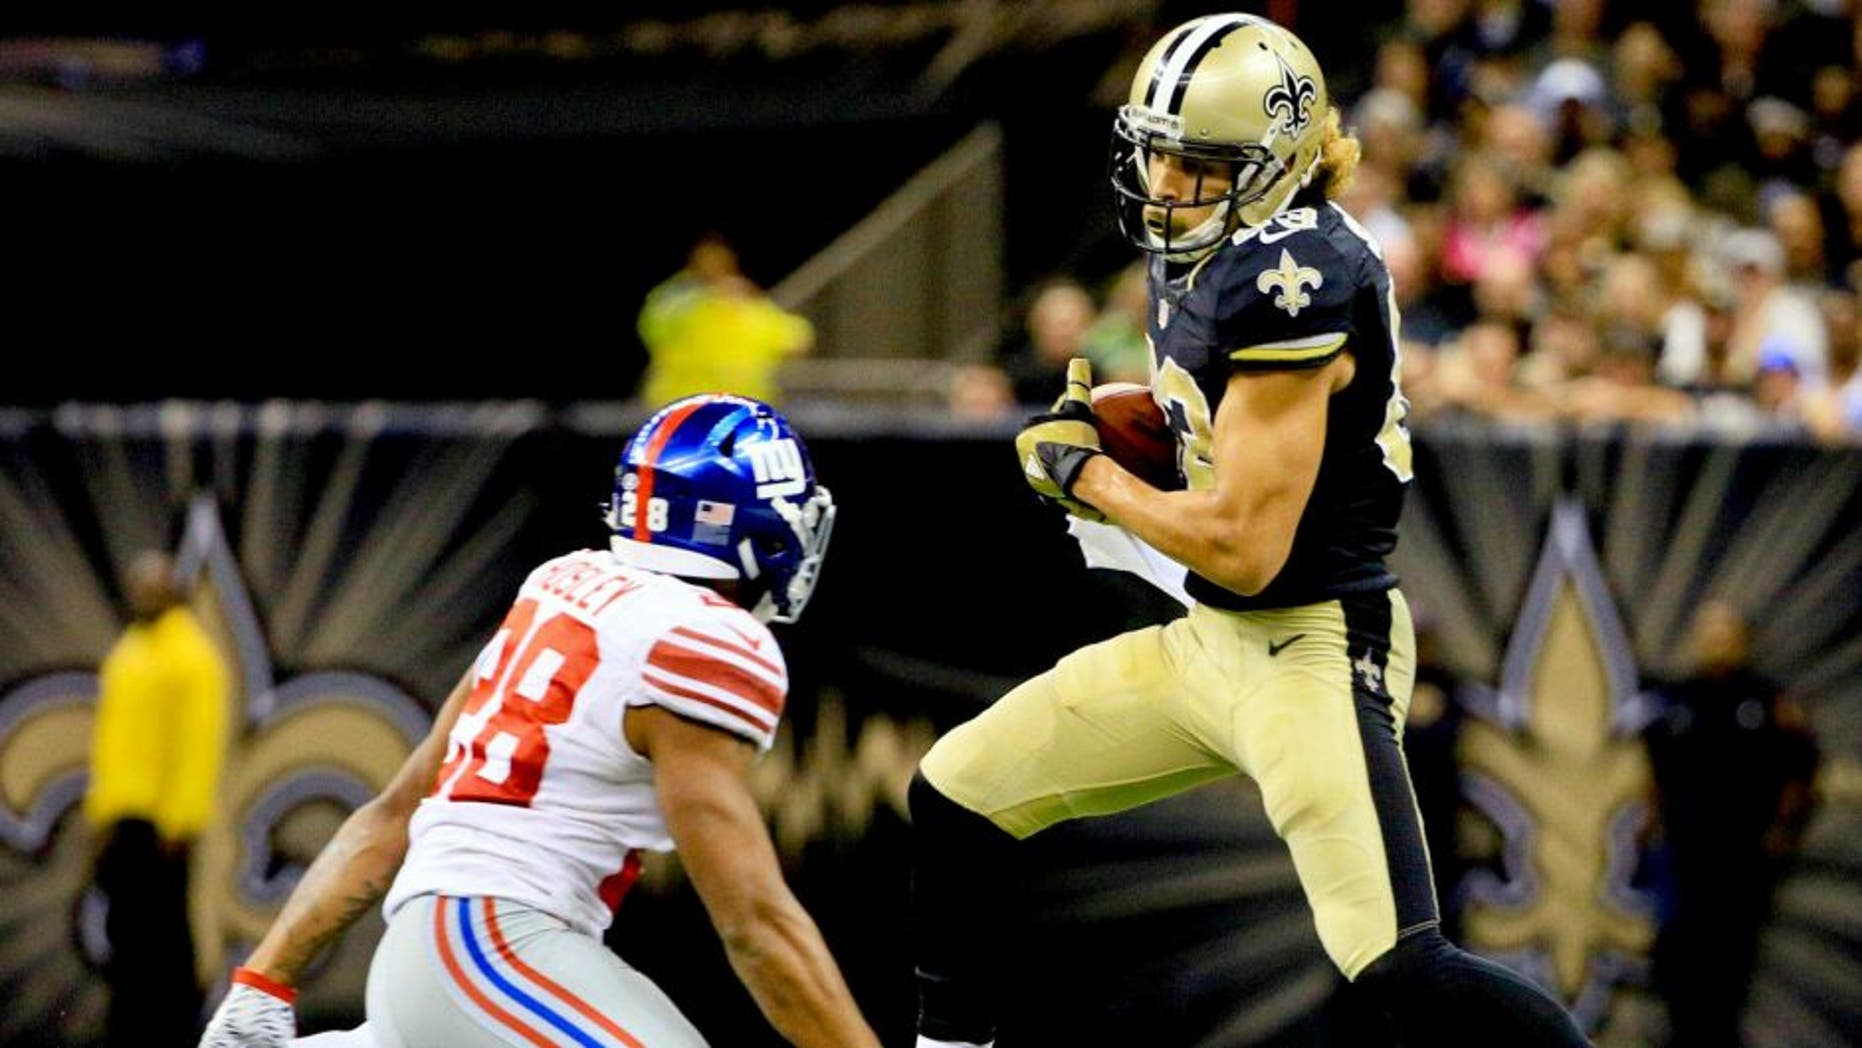 Nov 1, 2015; New Orleans, LA, USA; New Orleans Saints wide receiver Willie Snead (83) catches a pass in front of New York Giants cornerback Jayron Hosley (28) during the fourth quarter of a game at the Mercedes-Benz Superdome. The Saints defeated the Giants 52-49. Mandatory Credit: Derick E. Hingle-USA TODAY Sports